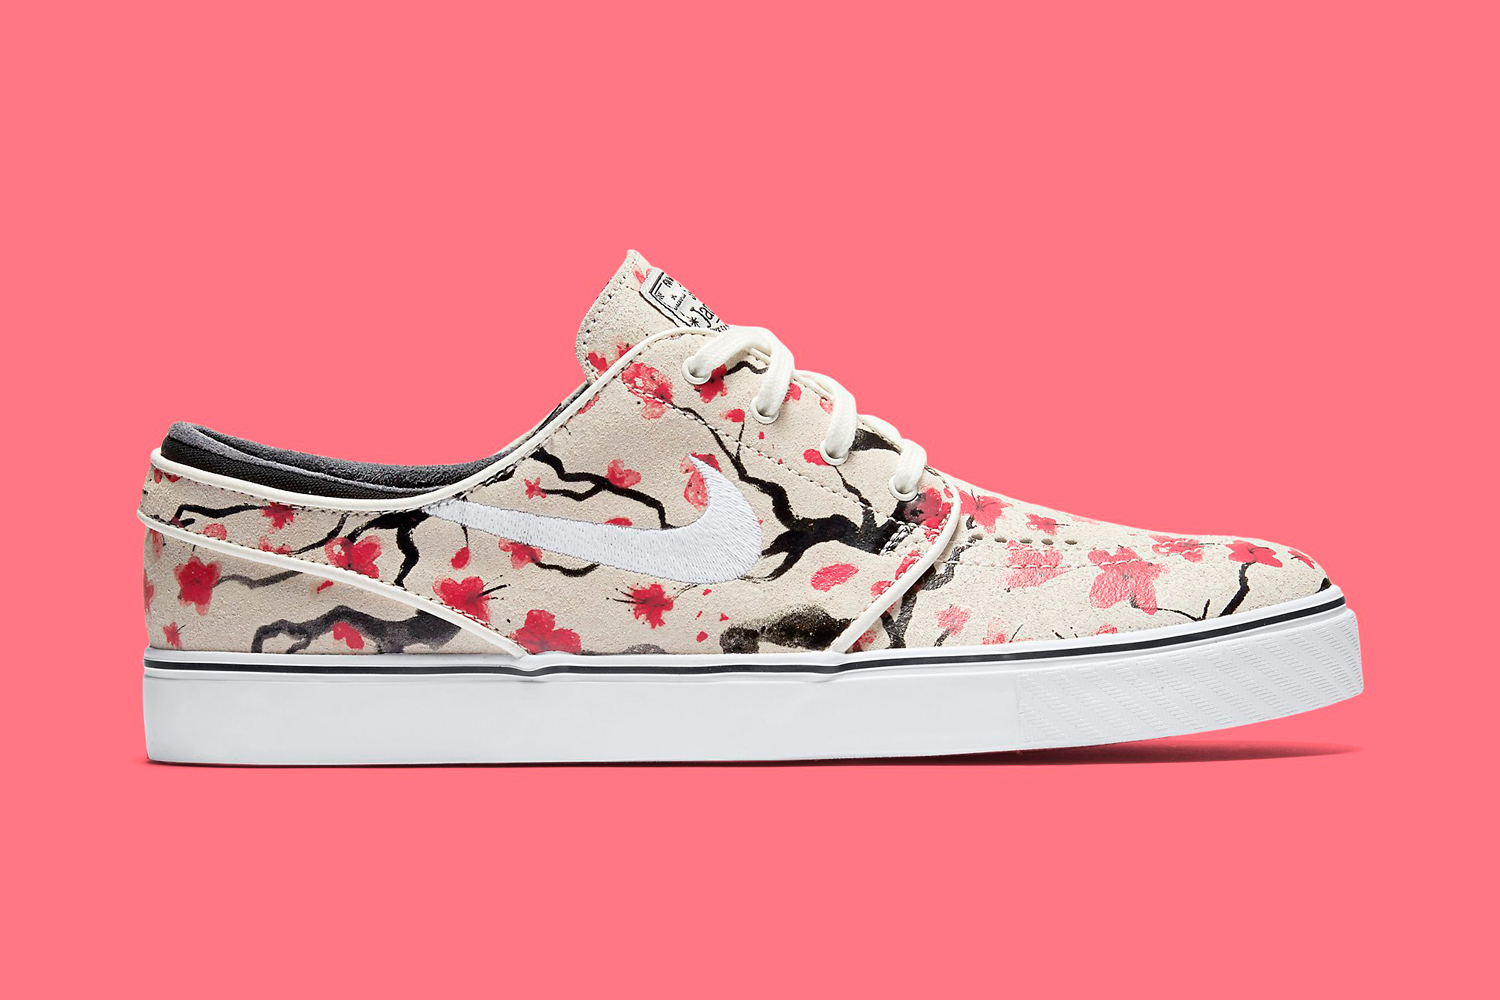 """Nike SB's Zoom Stefan Janoski Silhouette is Next Up to Get the """"Cherry Blossom"""" Treatment"""